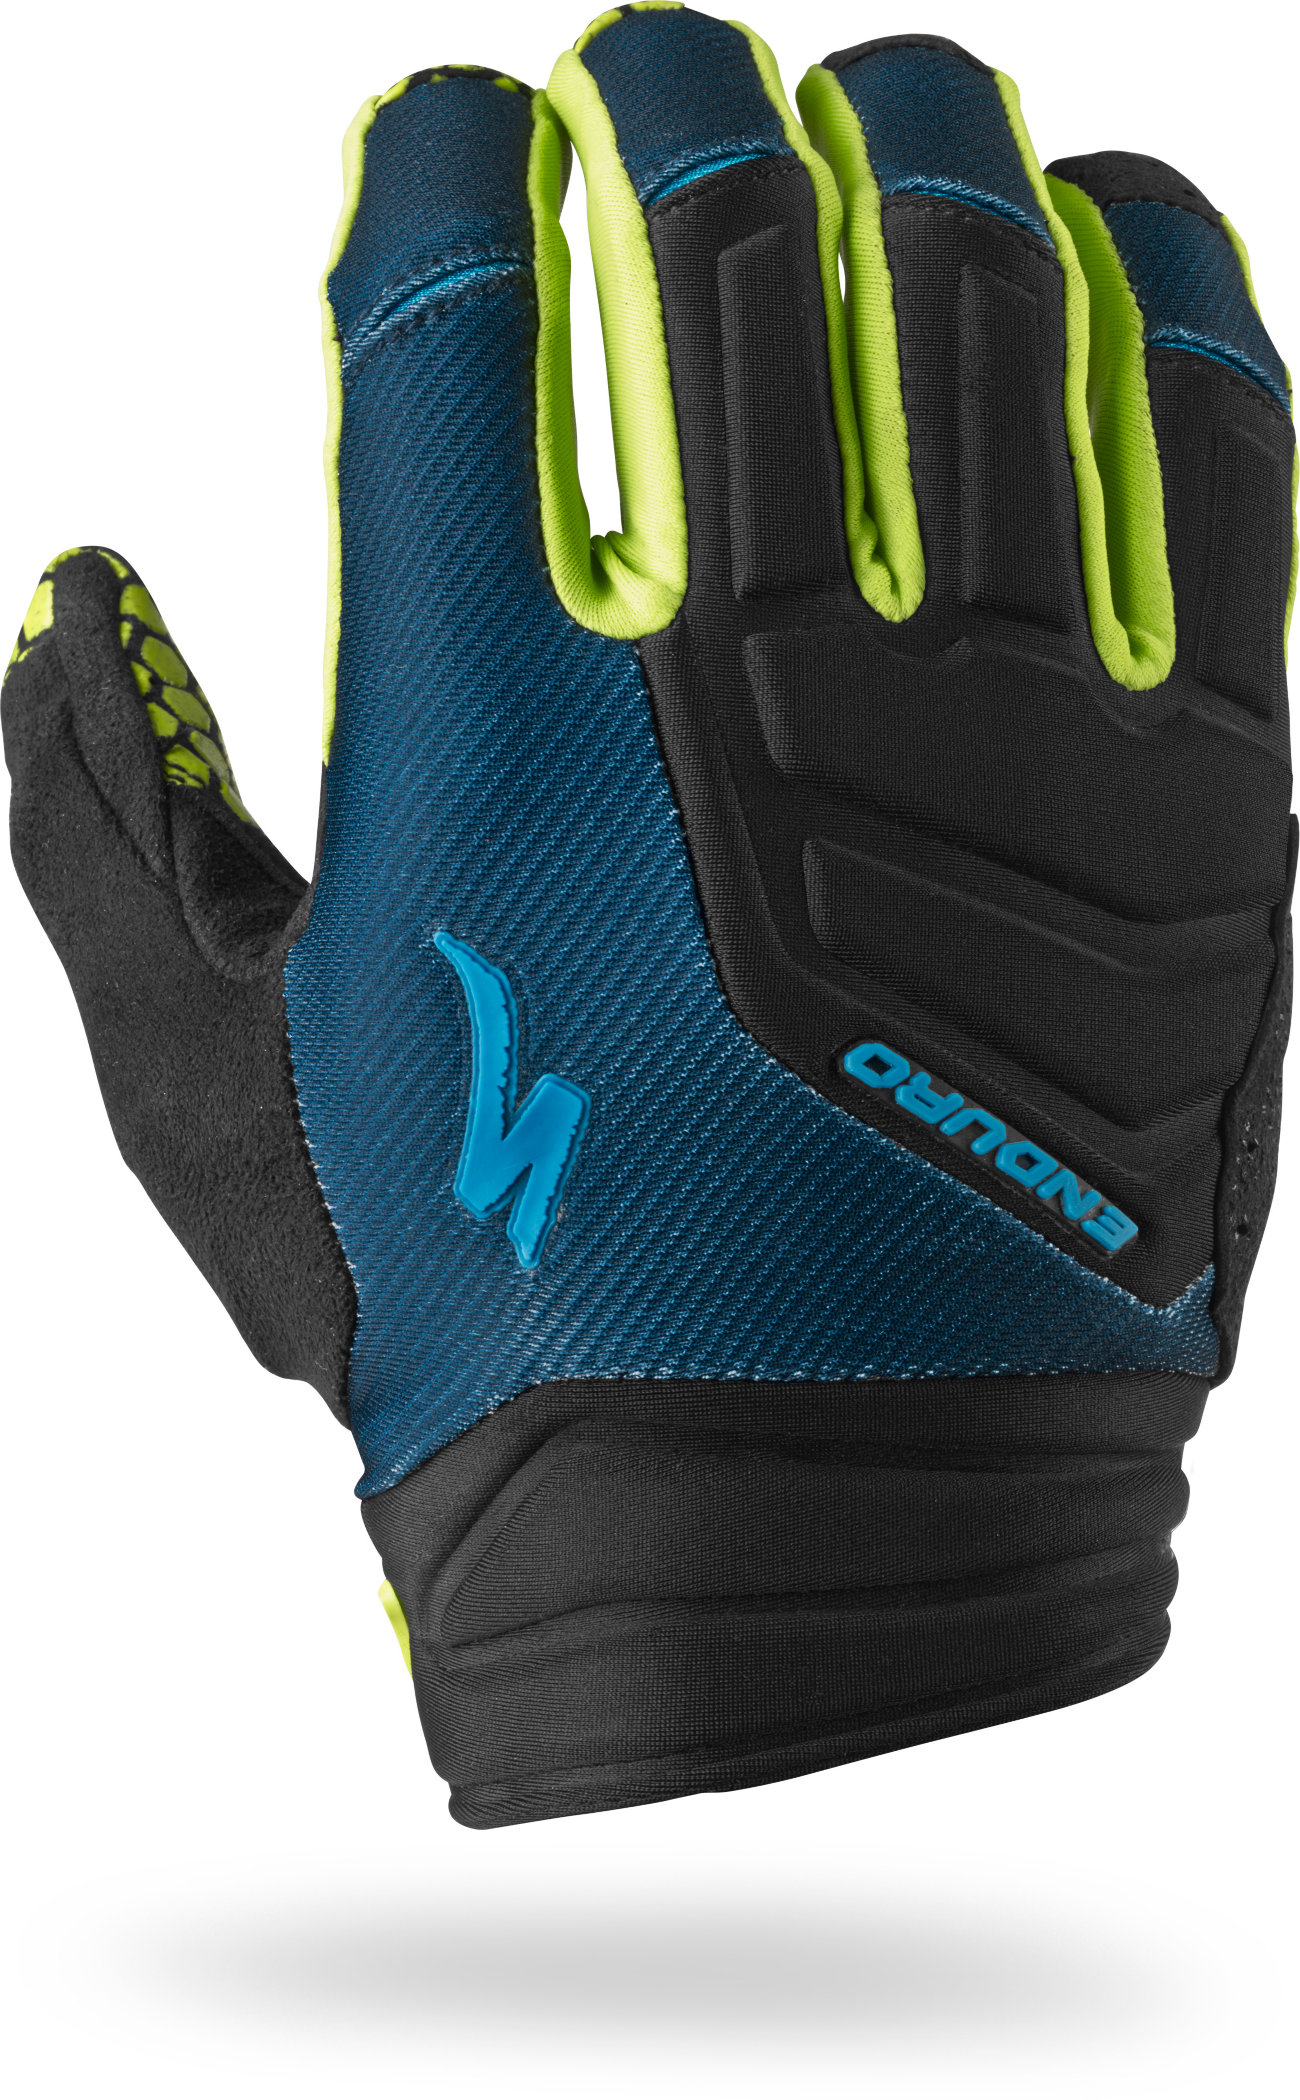 SPECIALIZED ENDURO GLOVE NVY/HYP GRN XL - Pulsschlag Bike+Sport